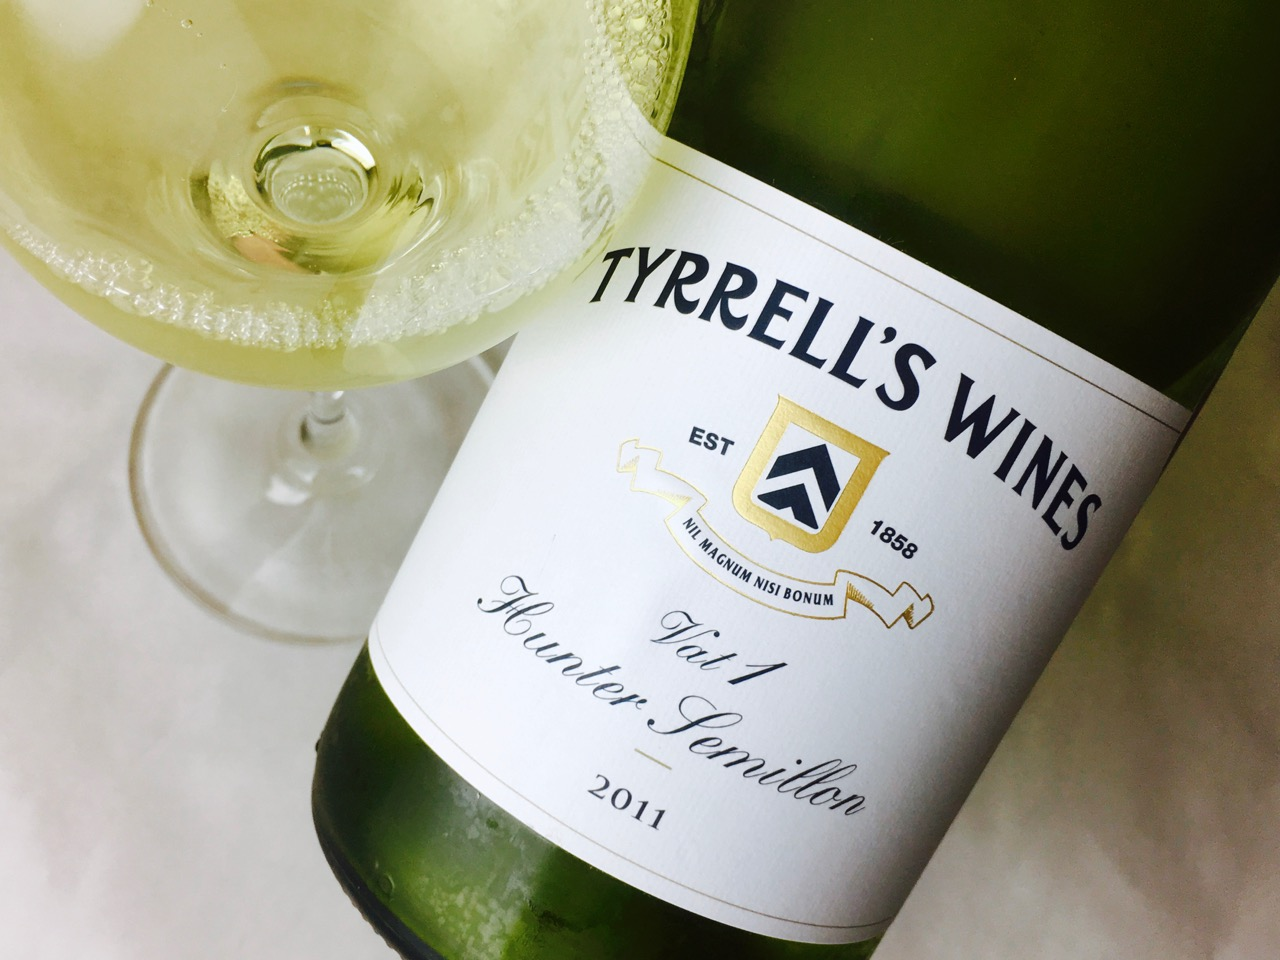 2011 Tyrrell's Wines Sémillon Vat 1 Hunter Valley